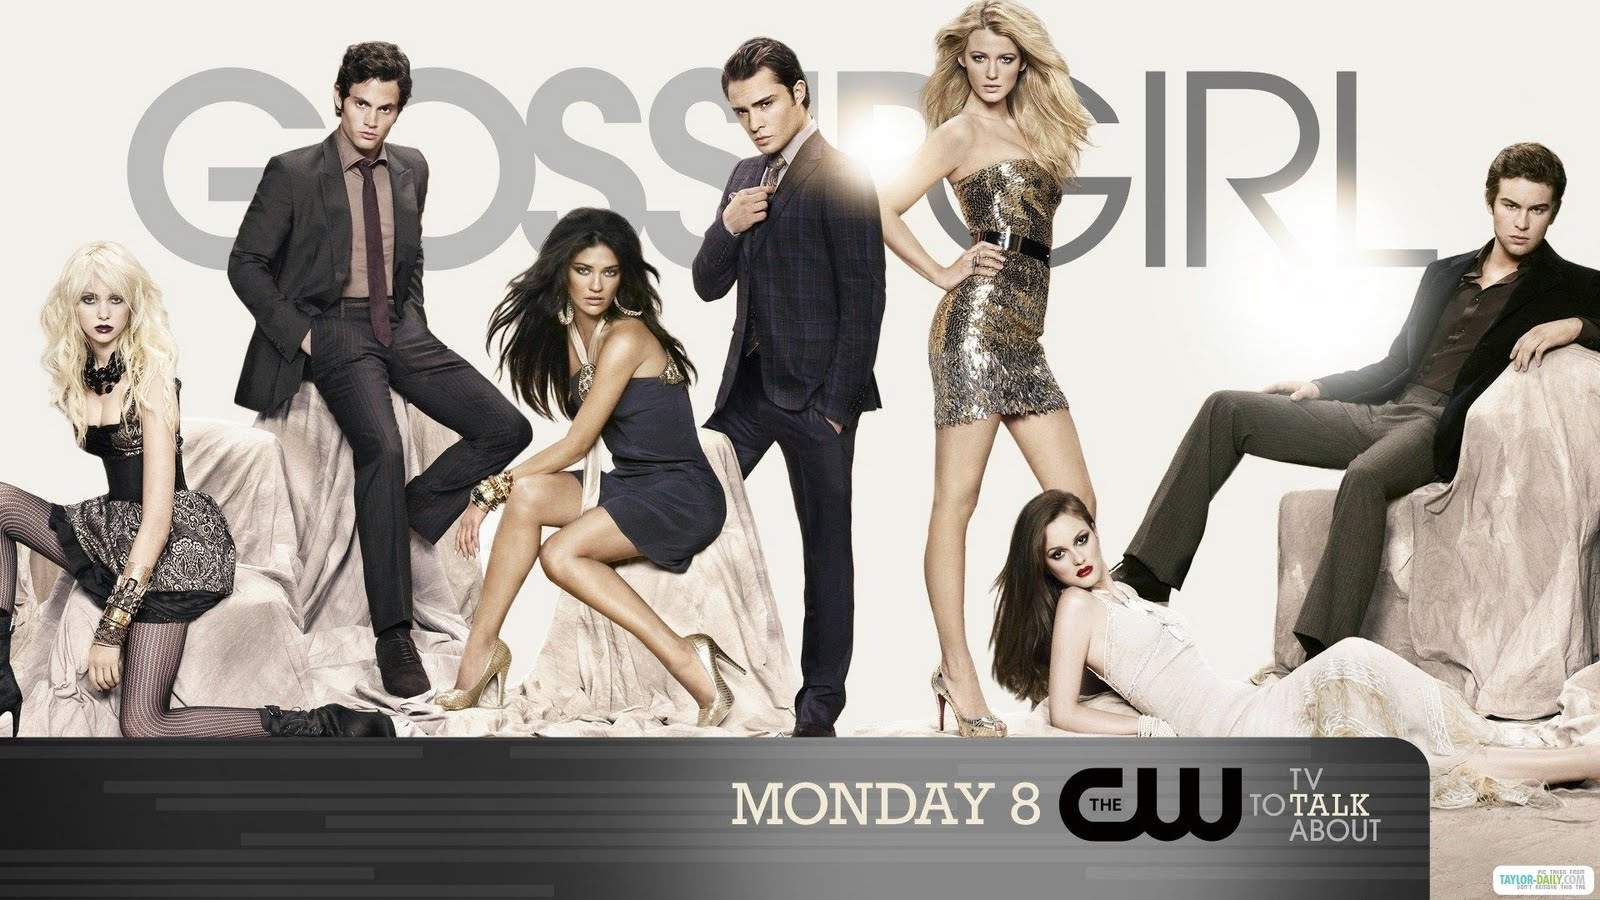 Free gossip girl shows